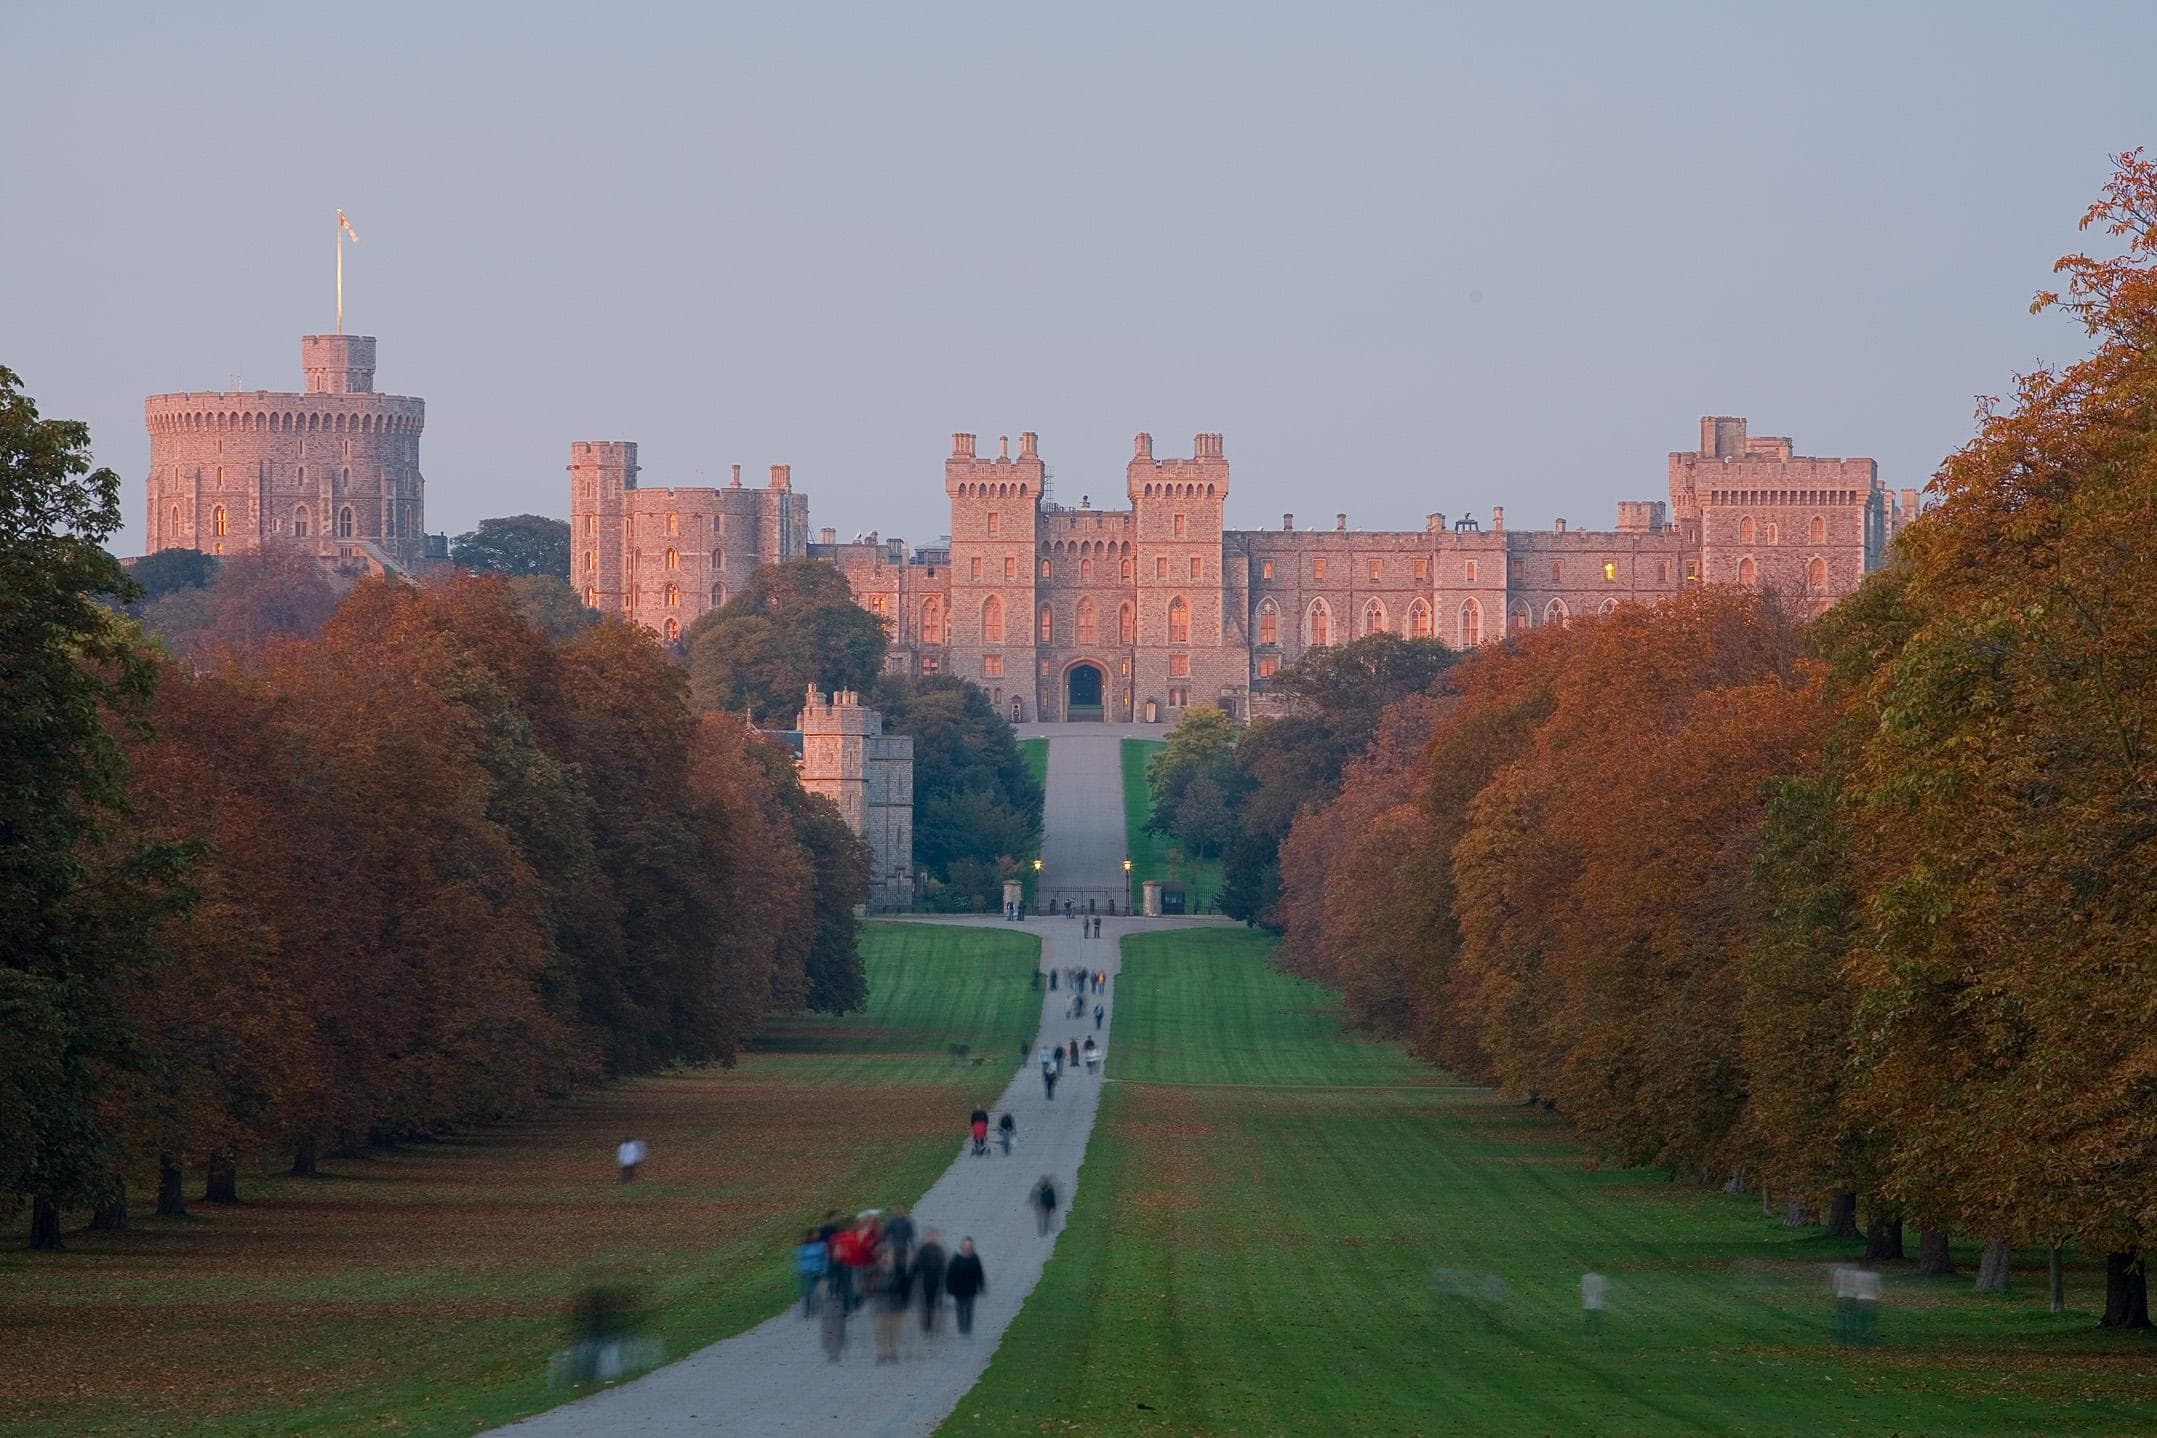 Random Royal Estates That Cost The Outrageous Amounts Of Money